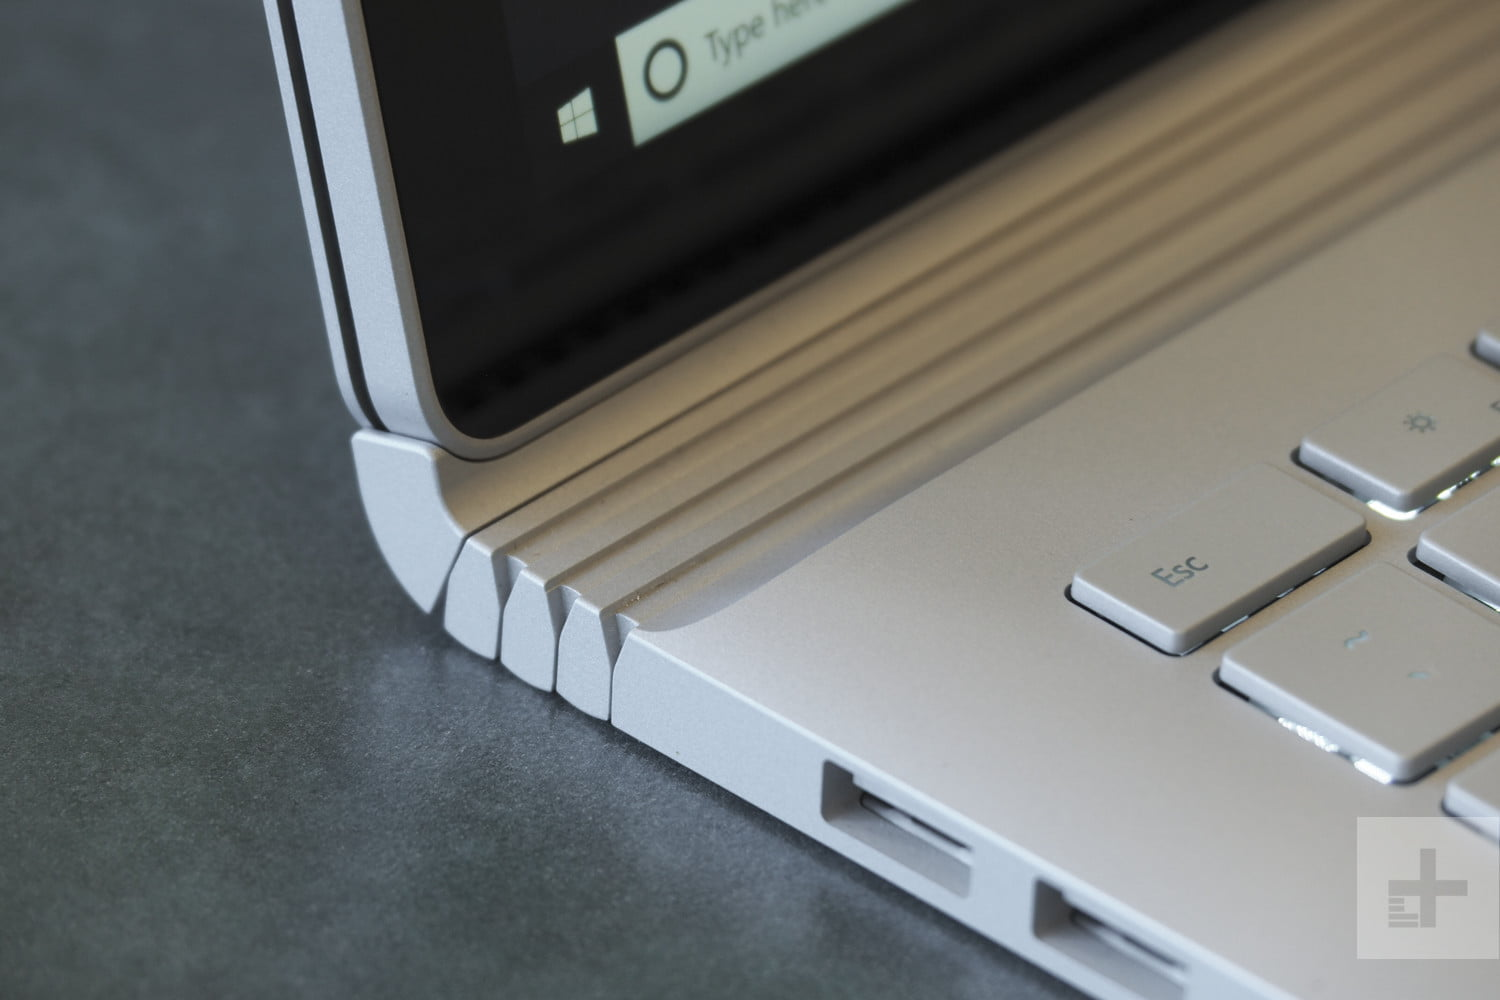 Surface Book 3: News, Rumors, Specs, Release Date, and More